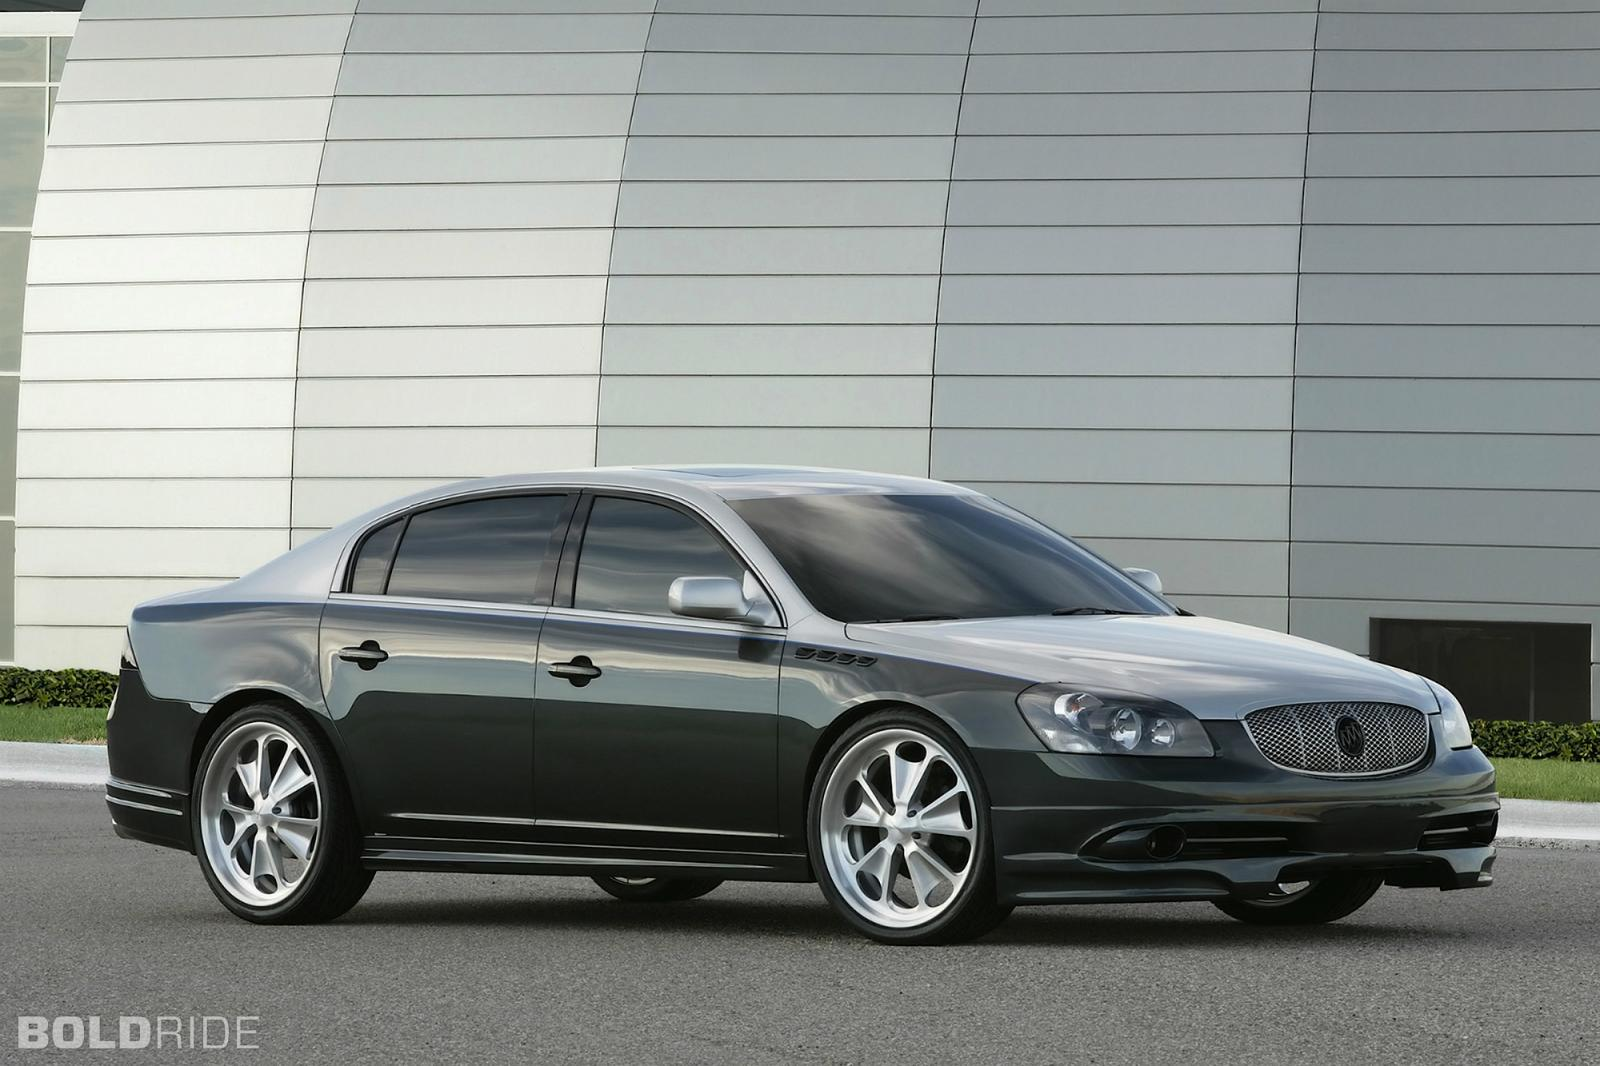 2006 Buick Lucerne - Information and photos - ZombieDrive